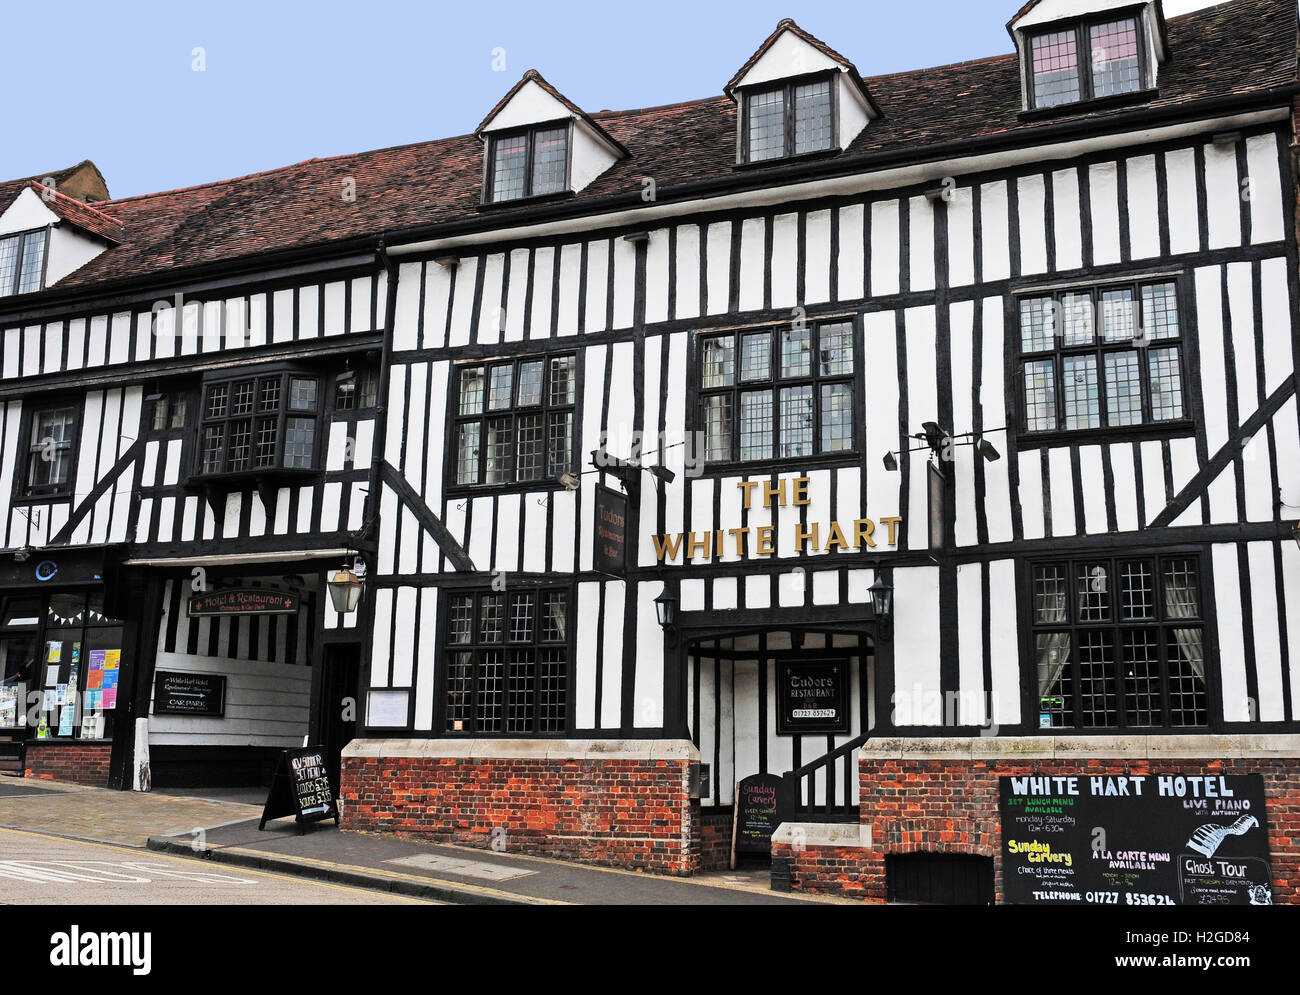 the white hart hotel st albans herts stock photo. Black Bedroom Furniture Sets. Home Design Ideas